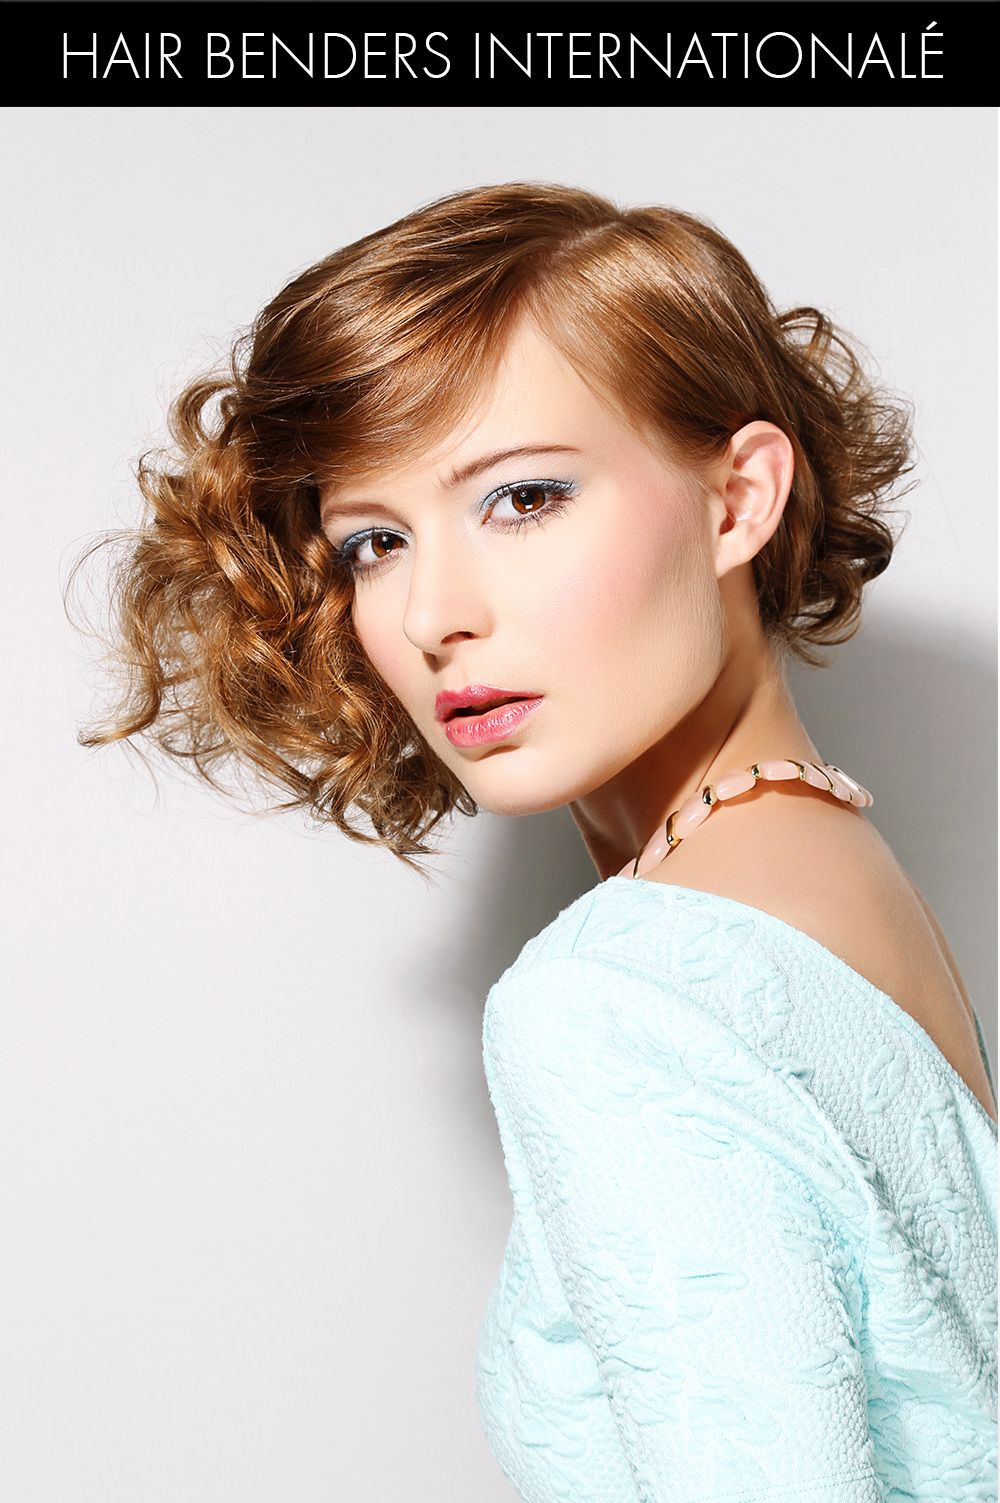 Vintage Romantic Hairstyle for Spring http://trendynesia.com/100-best-hairstyles-for-2016/